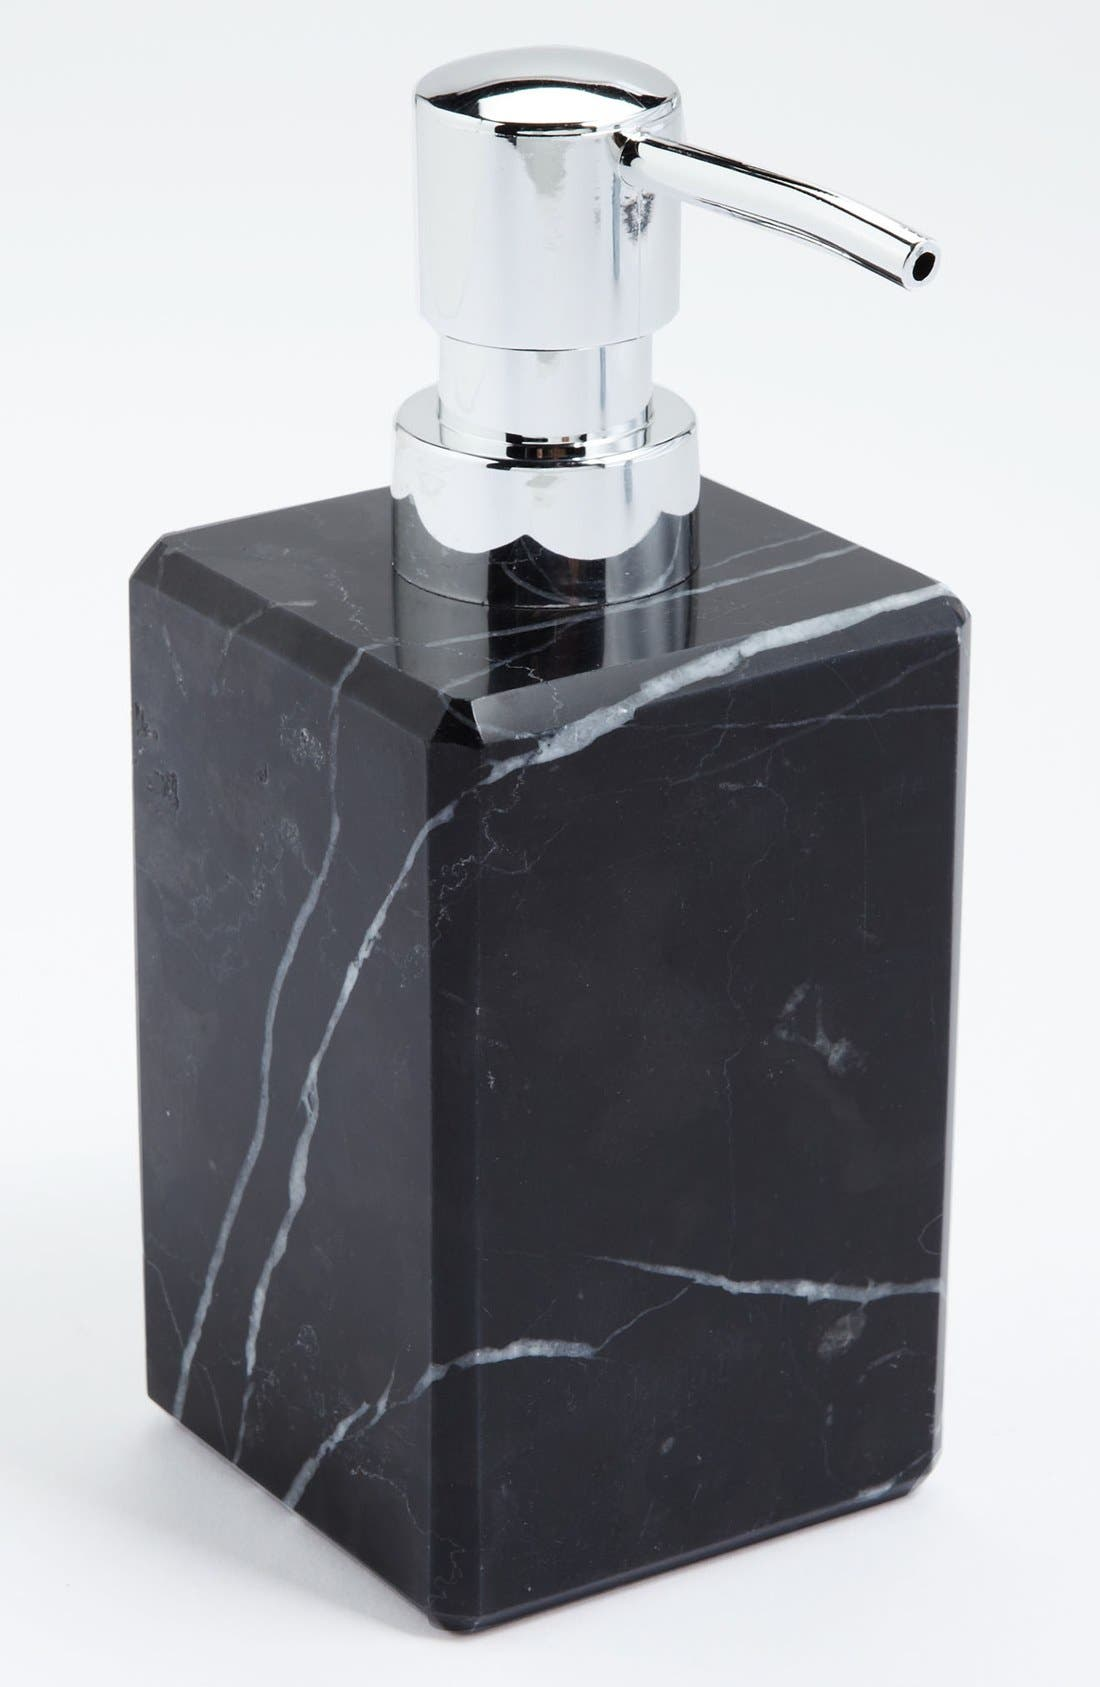 Waterworks Studio U0027Lunau0027 Black Marble Soap Dispenser (Online Only)